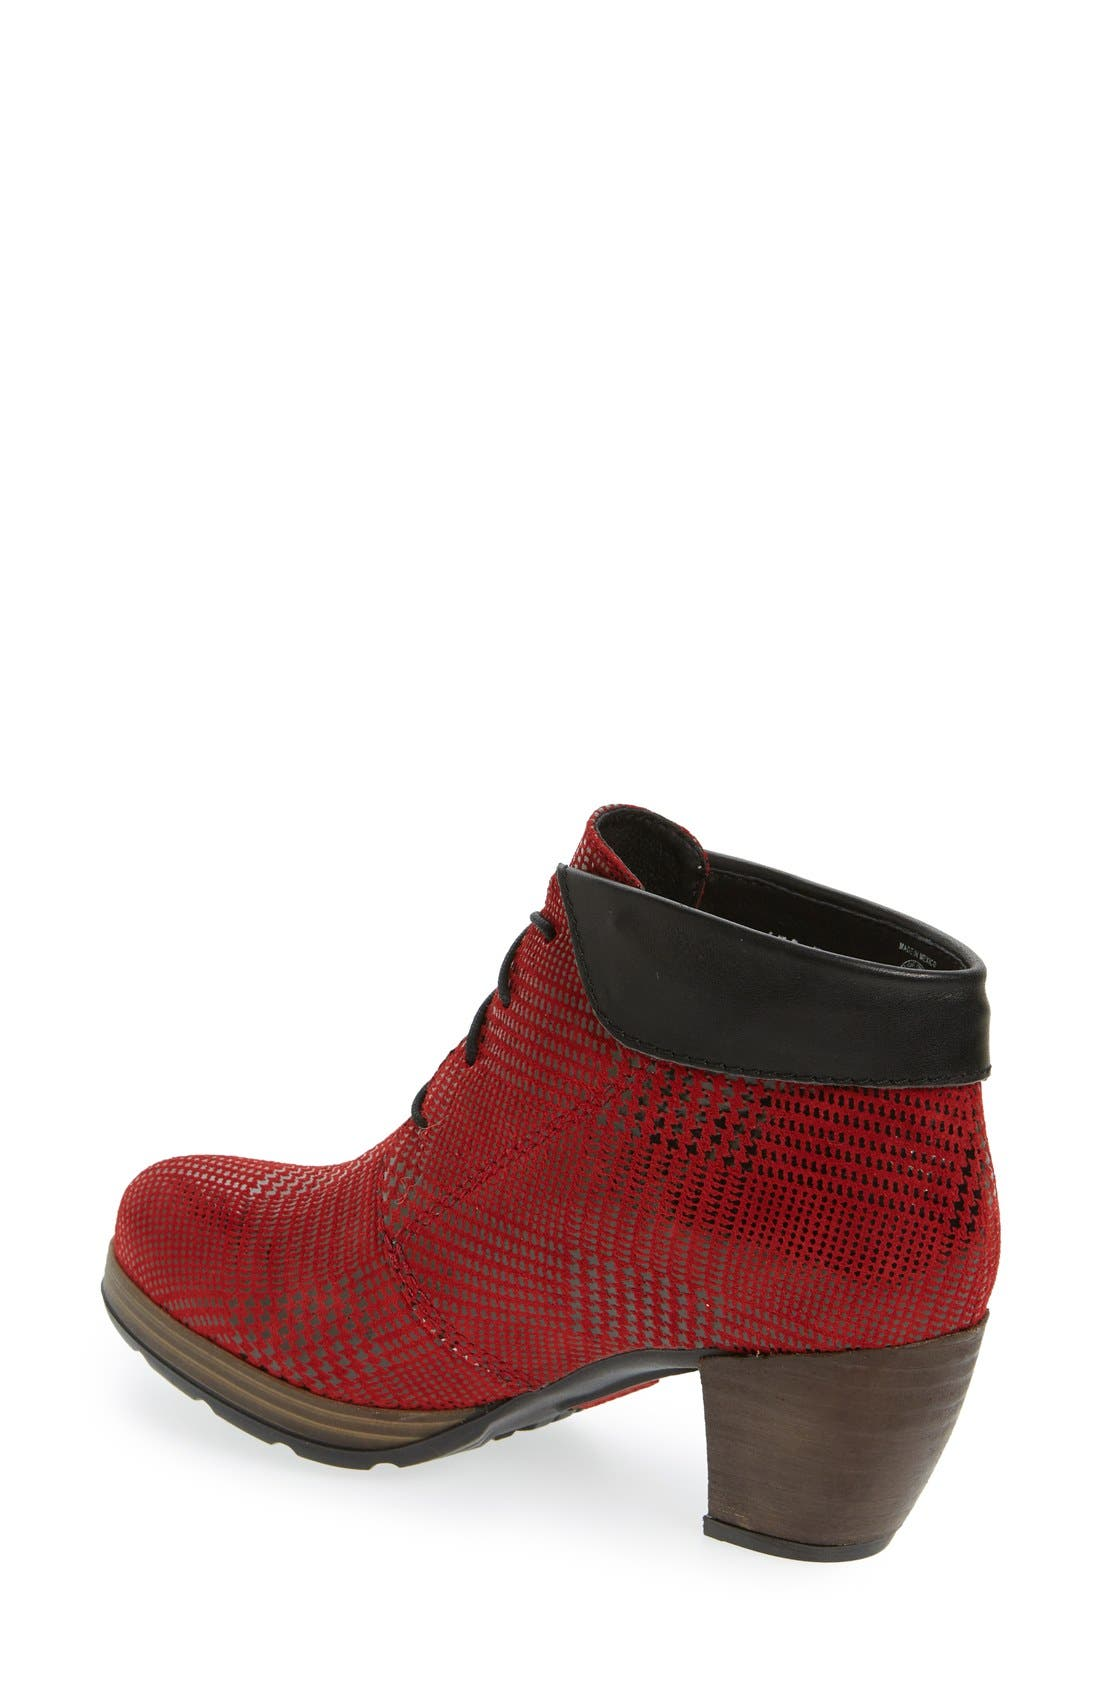 Alternate Image 2  - Wolky 'Jacquerie' Lace-Up Bootie (Women)